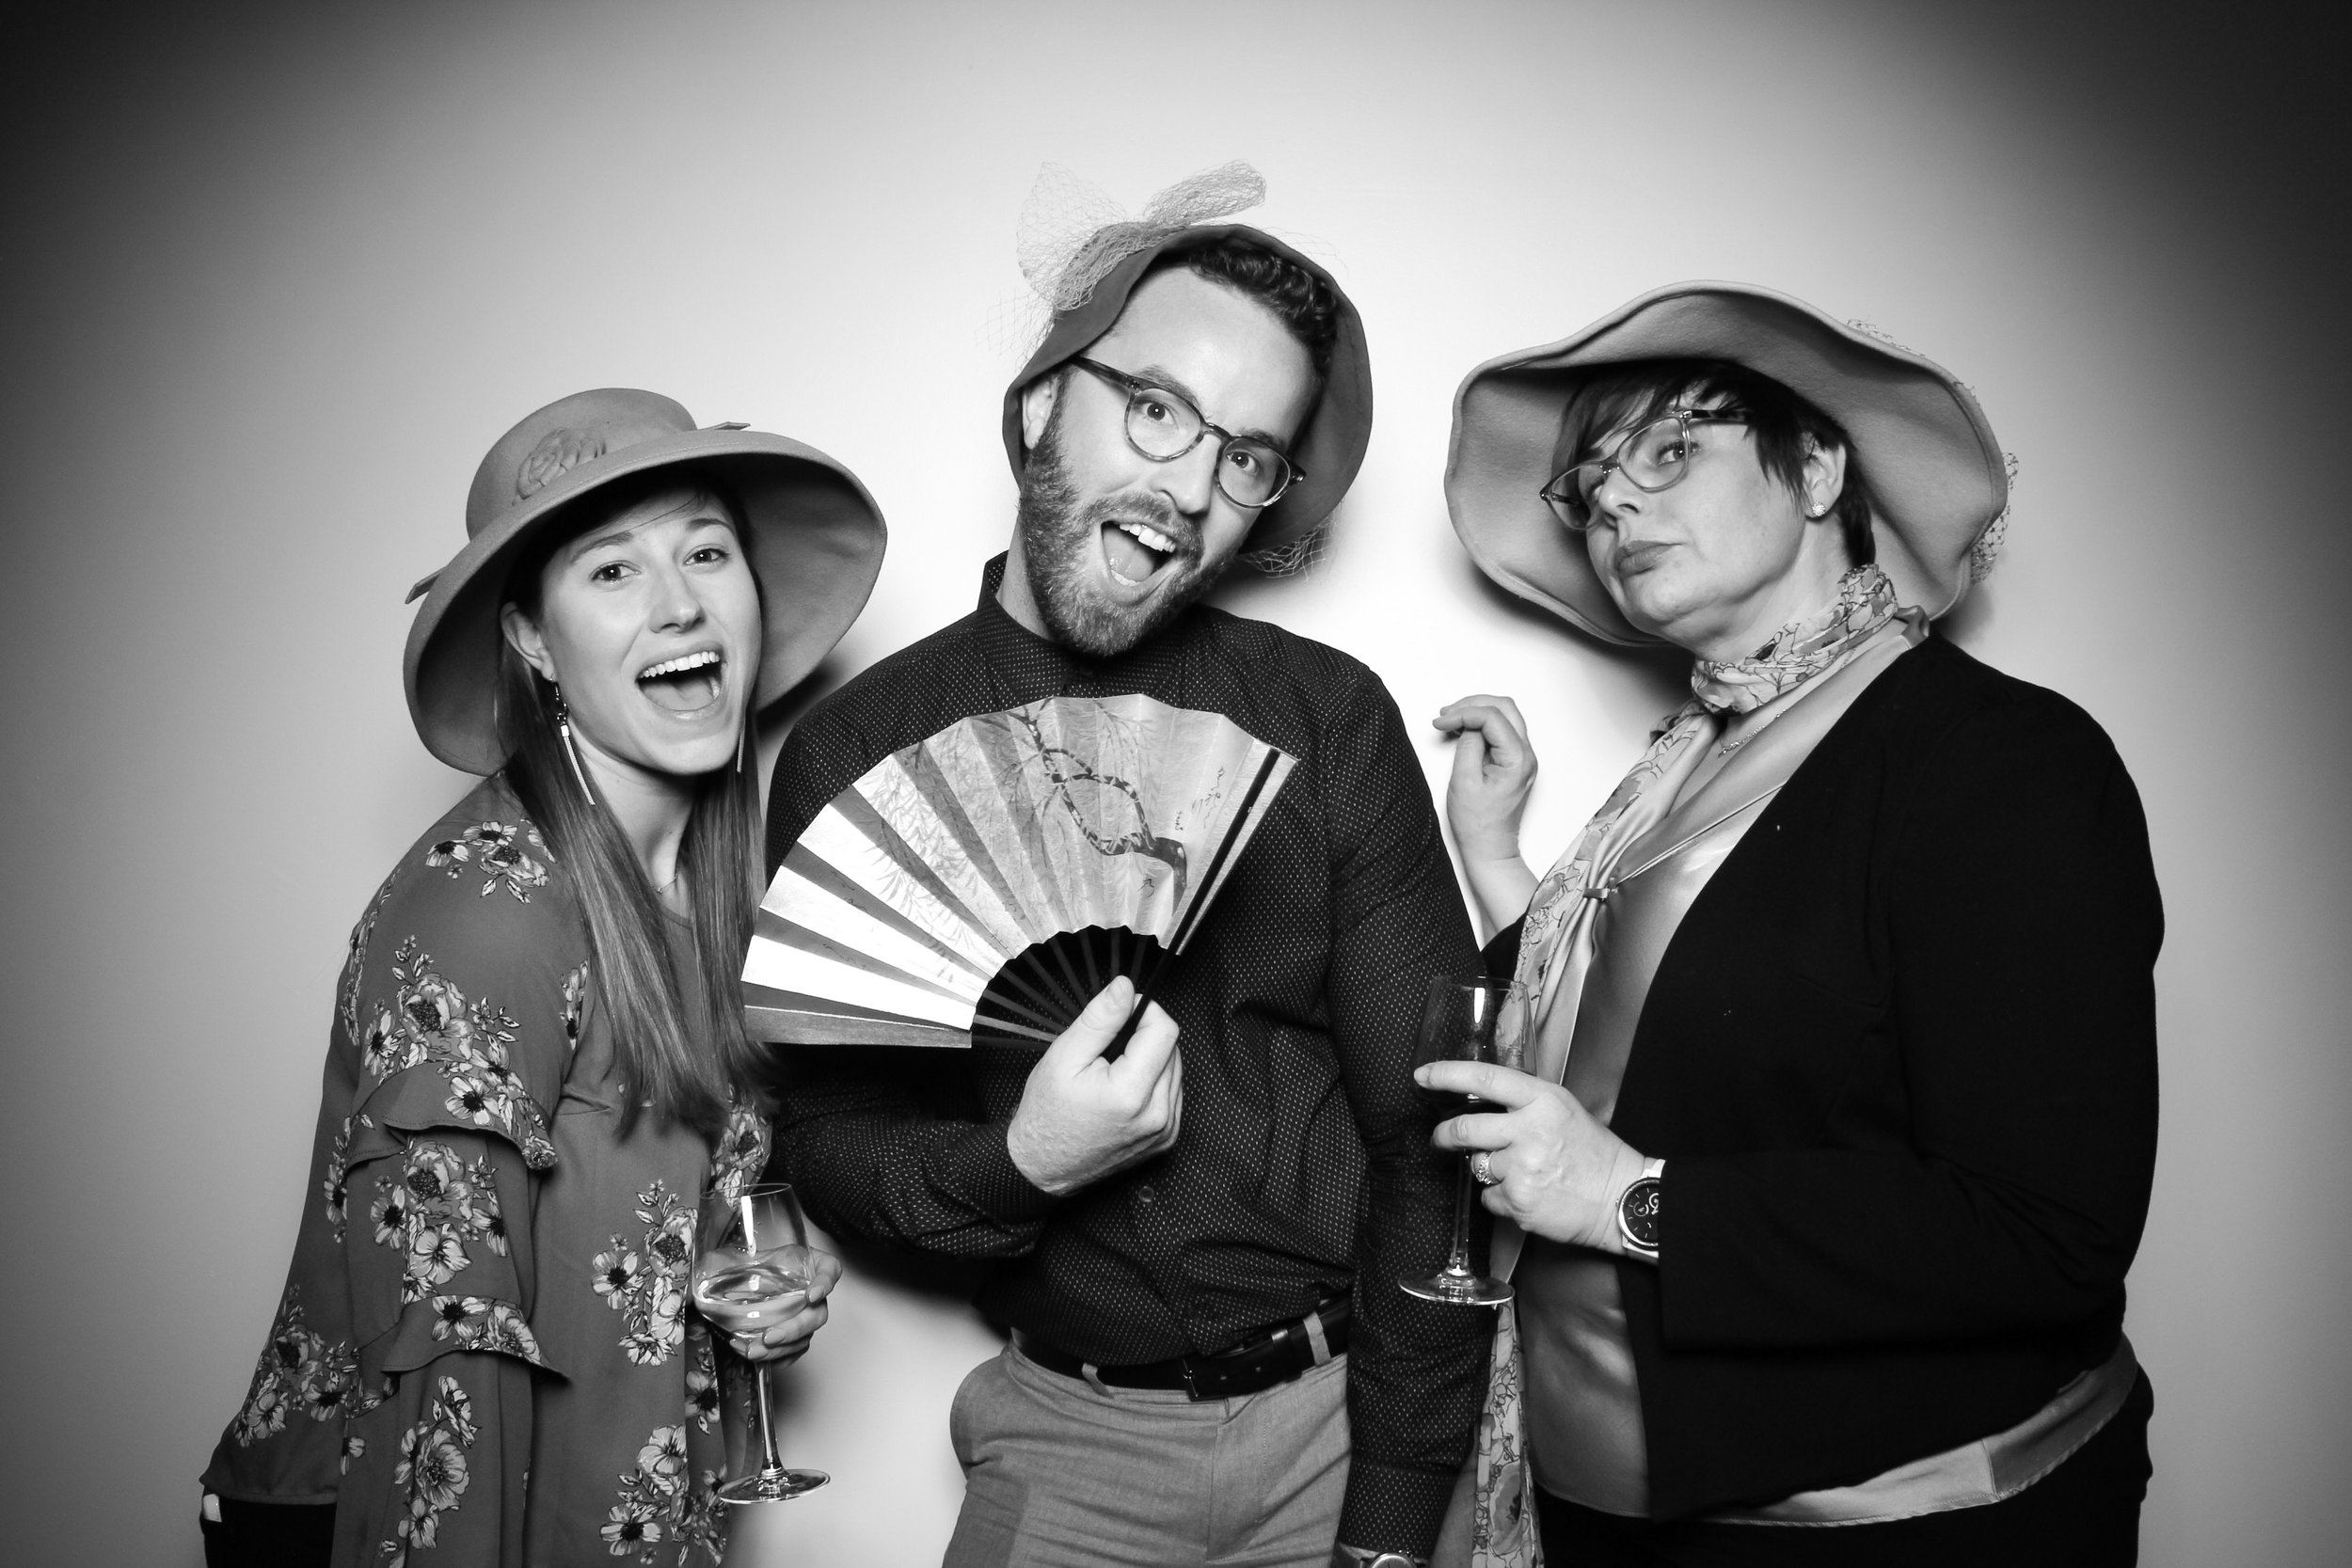 Venue_West_J&L_Catering_Chicago_Photo_Booth_Vitnage__18.jpg